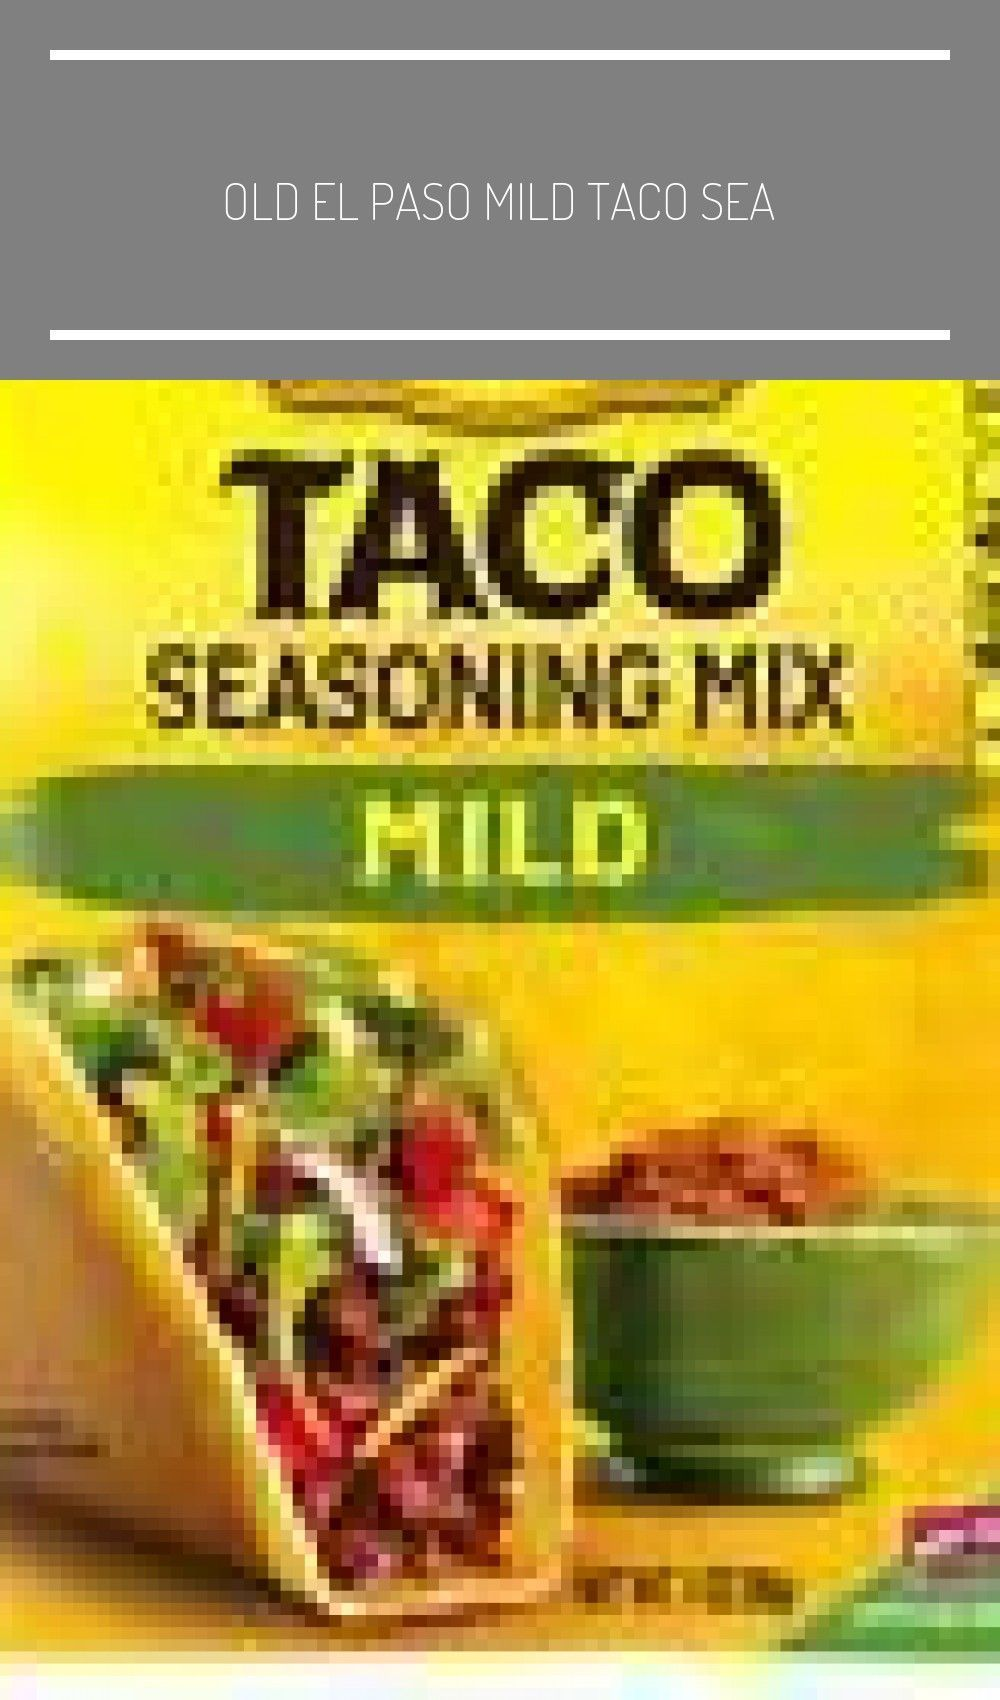 Old El Paso Mild Taco Sea Tacoseasoningpacket Old El Paso Mild Taco Seasoning Mix 1 Oz Pack Taco Mix Seasoning Mild Taco Seasoning Homemade Taco Seasoning Mix